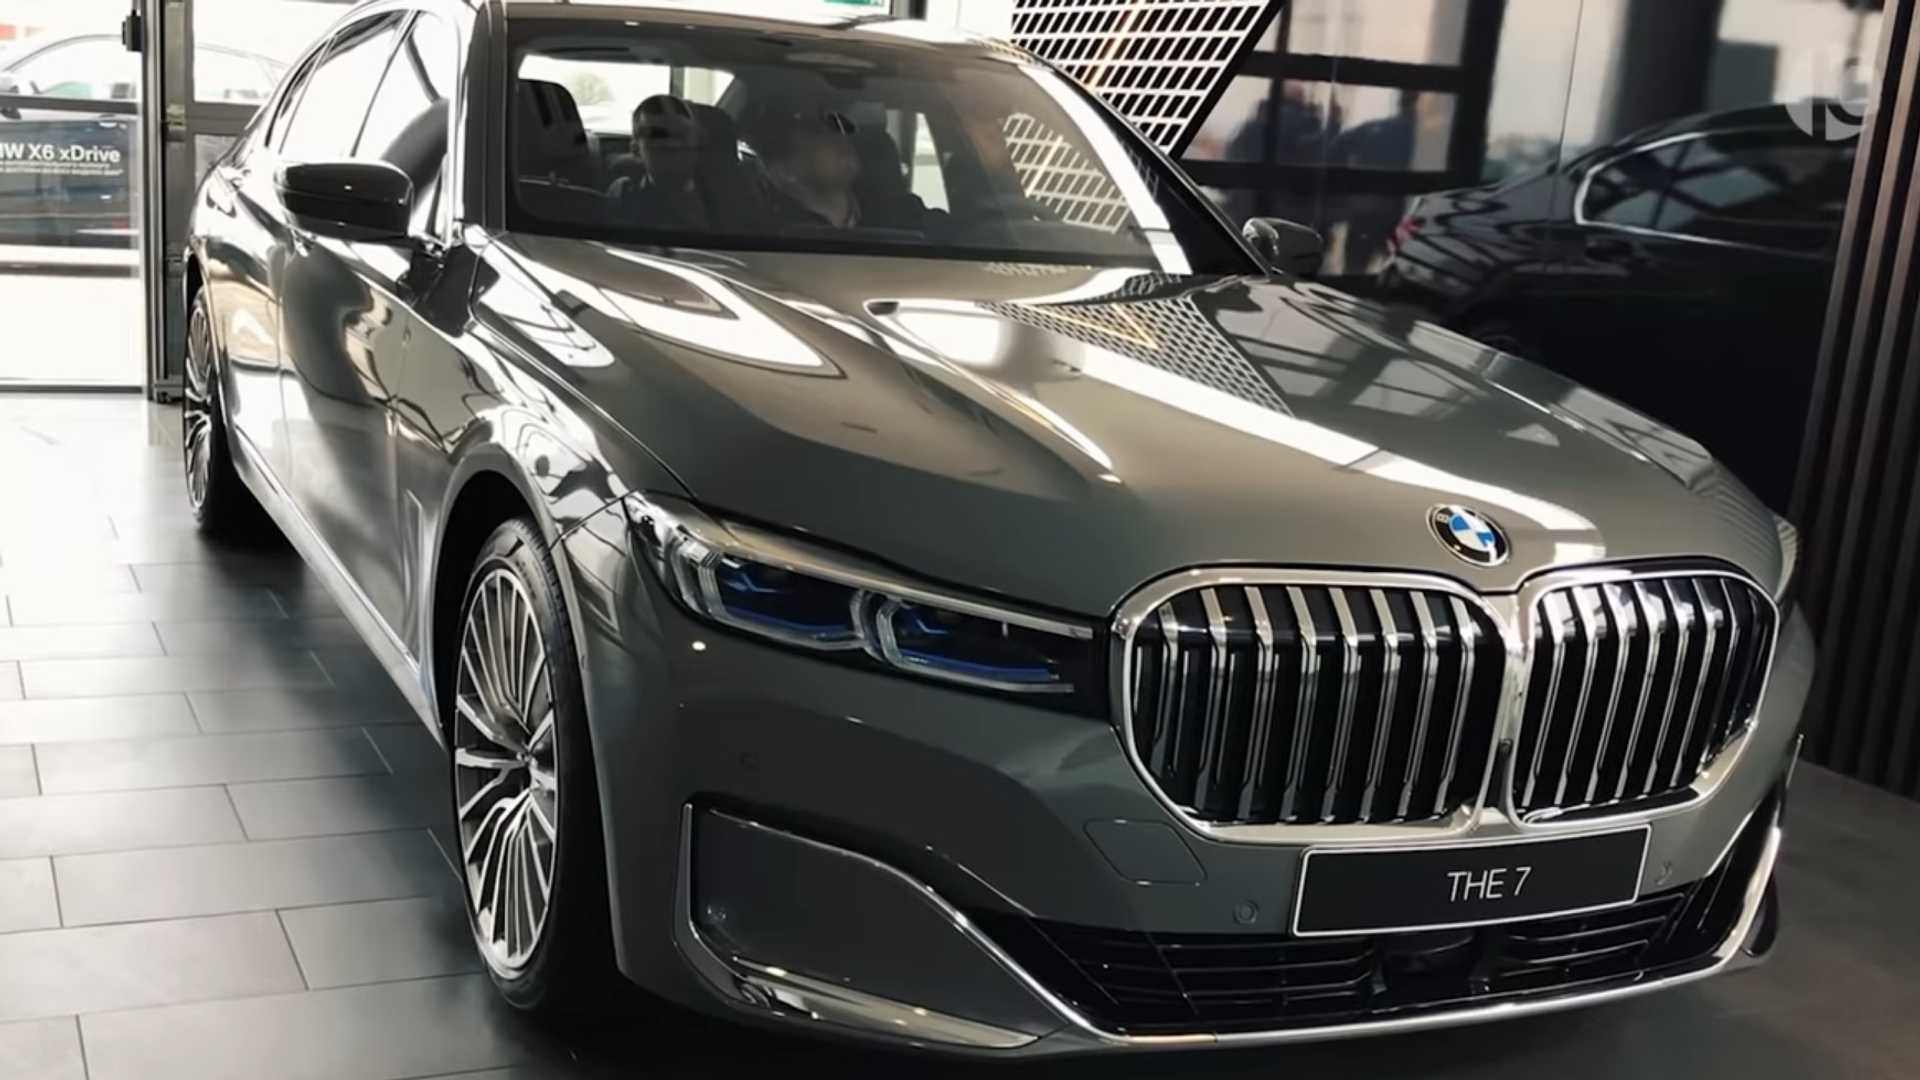 56 New Bmw Series 7 2020 Style